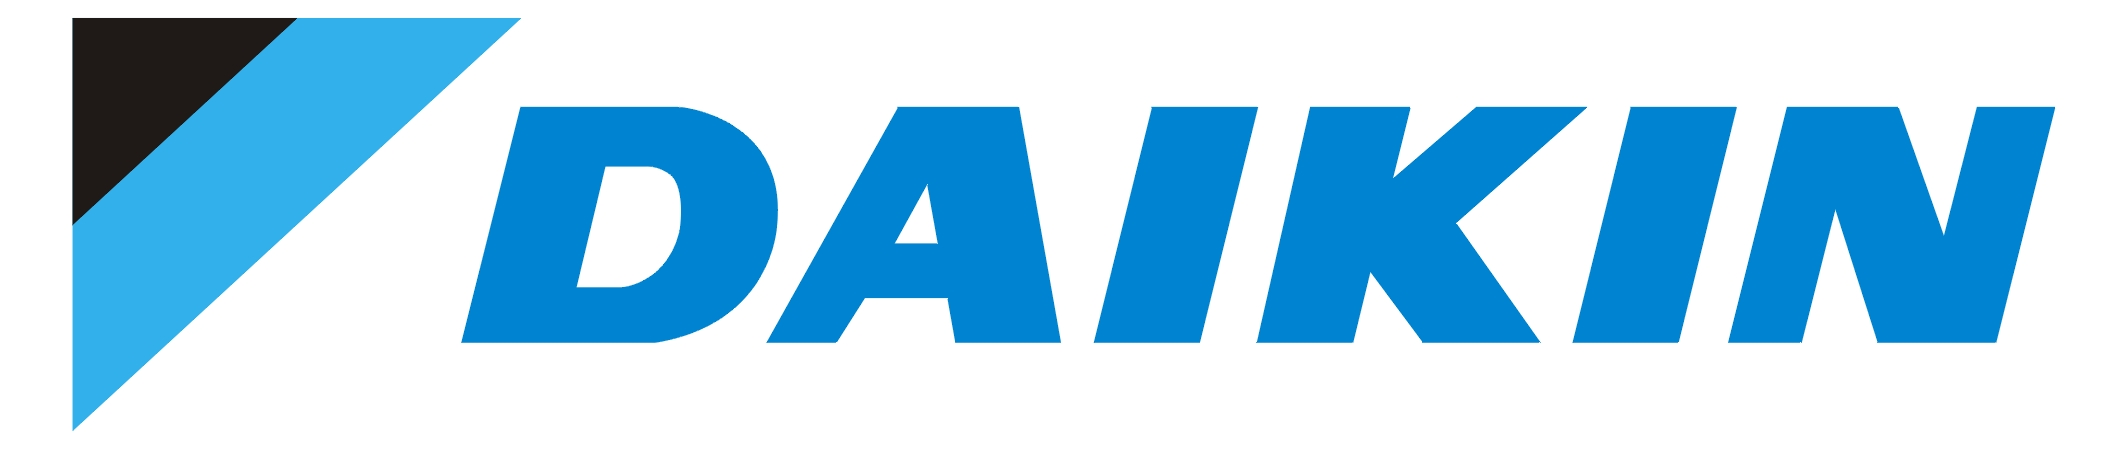 best brands of air con 2017 Daikin logo